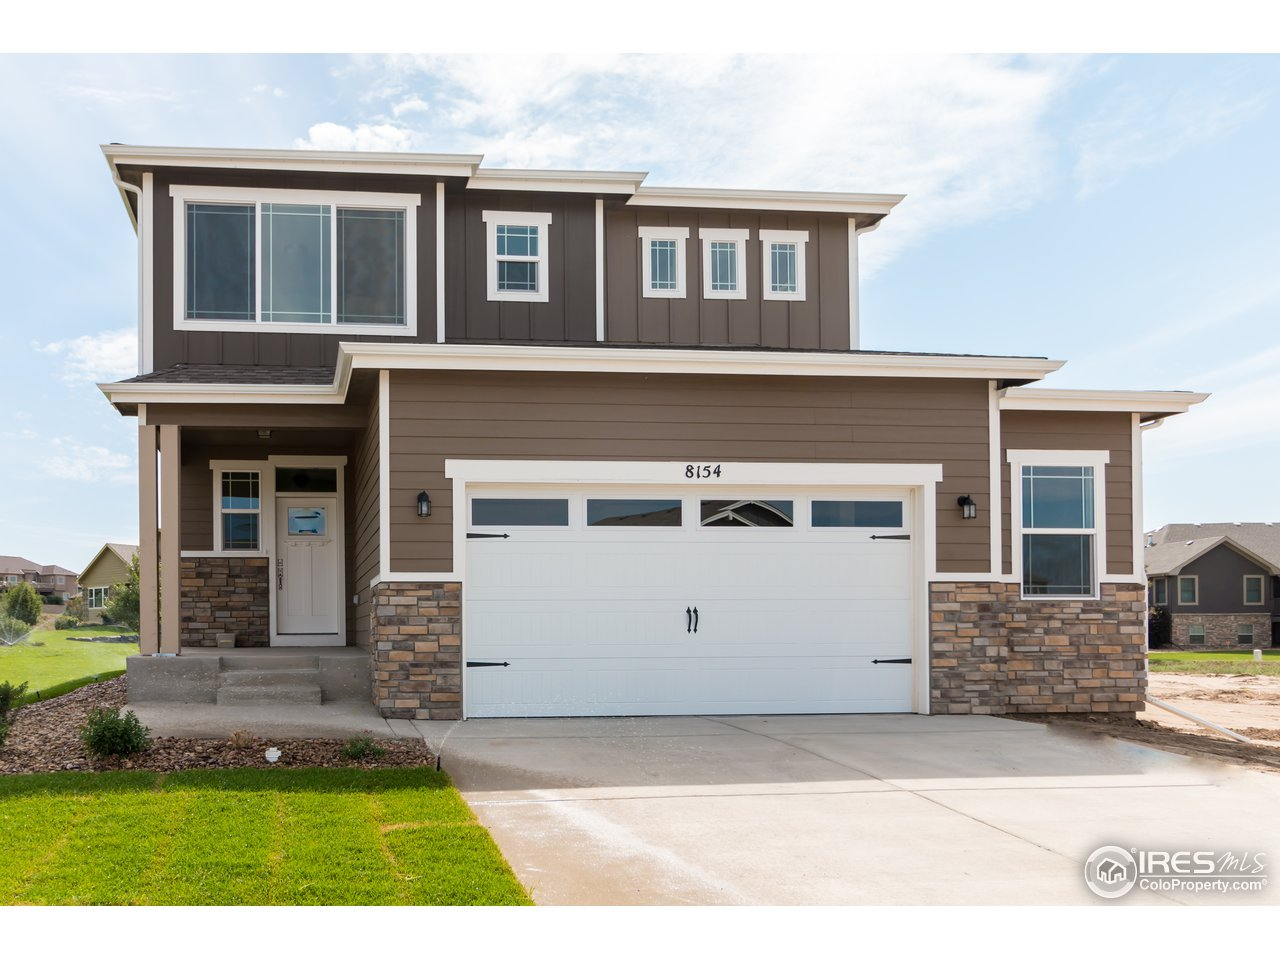 Rare opportunity to own a brand new Baessler Home without the 6-month wait; home is move-in ready!  The London 2 story plan offers plenty of space with a smart design that allows for open entertainment on the main level, both inside and out.  The second level features 3 bedrooms, 2 baths, and laundry. This home is full of upgrades including quartz kitchen countertops, gas range, additional 6x24' garage bay extension, and much more!  With easy access to the Poudre River Trail!